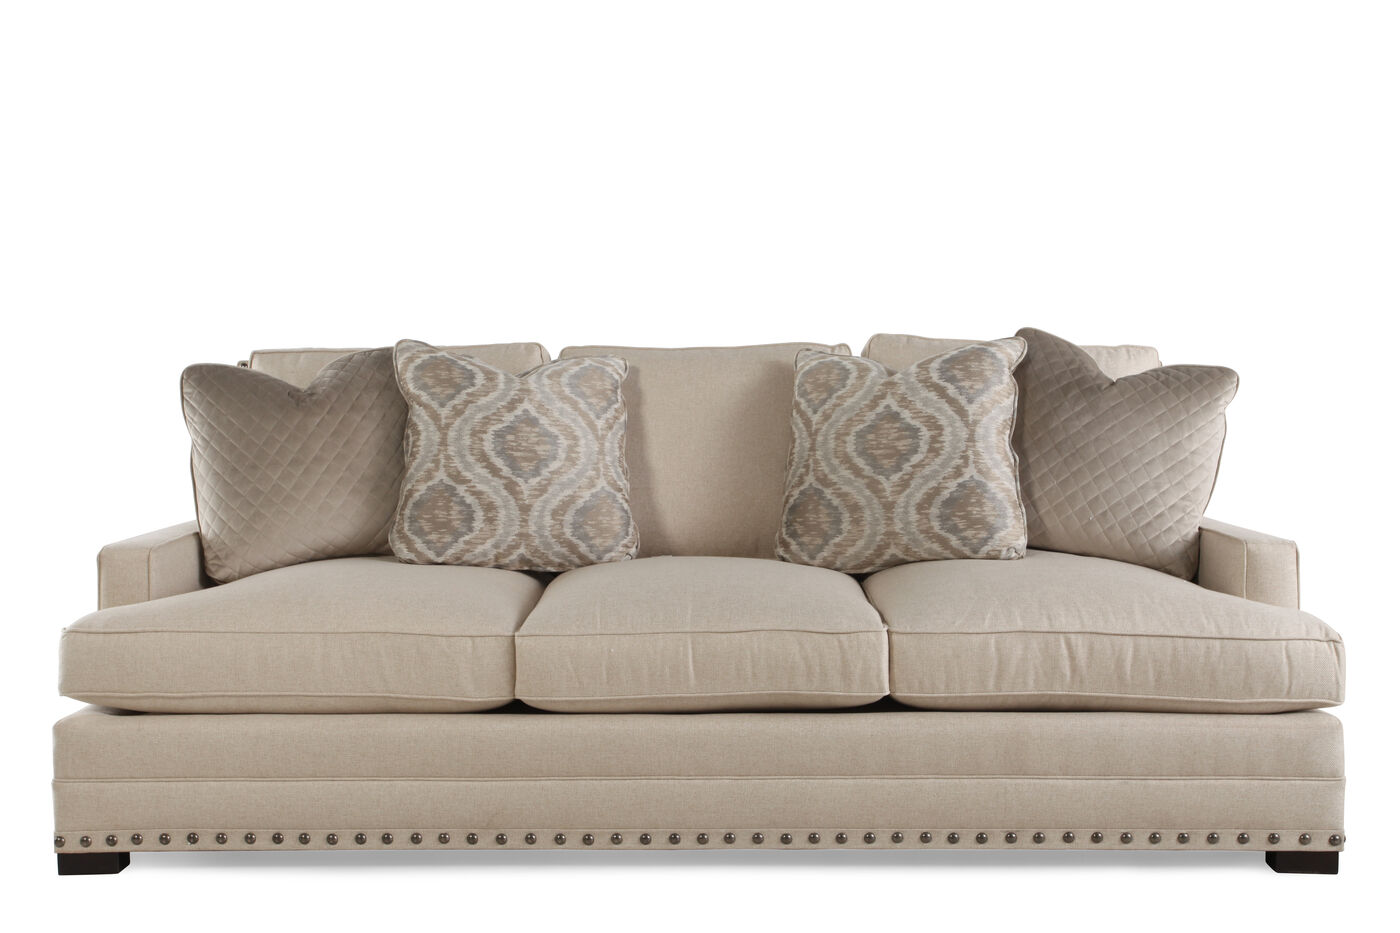 Traditional Low Profile 94 Quot Sofa In Beige Mathis Brothers Furniture